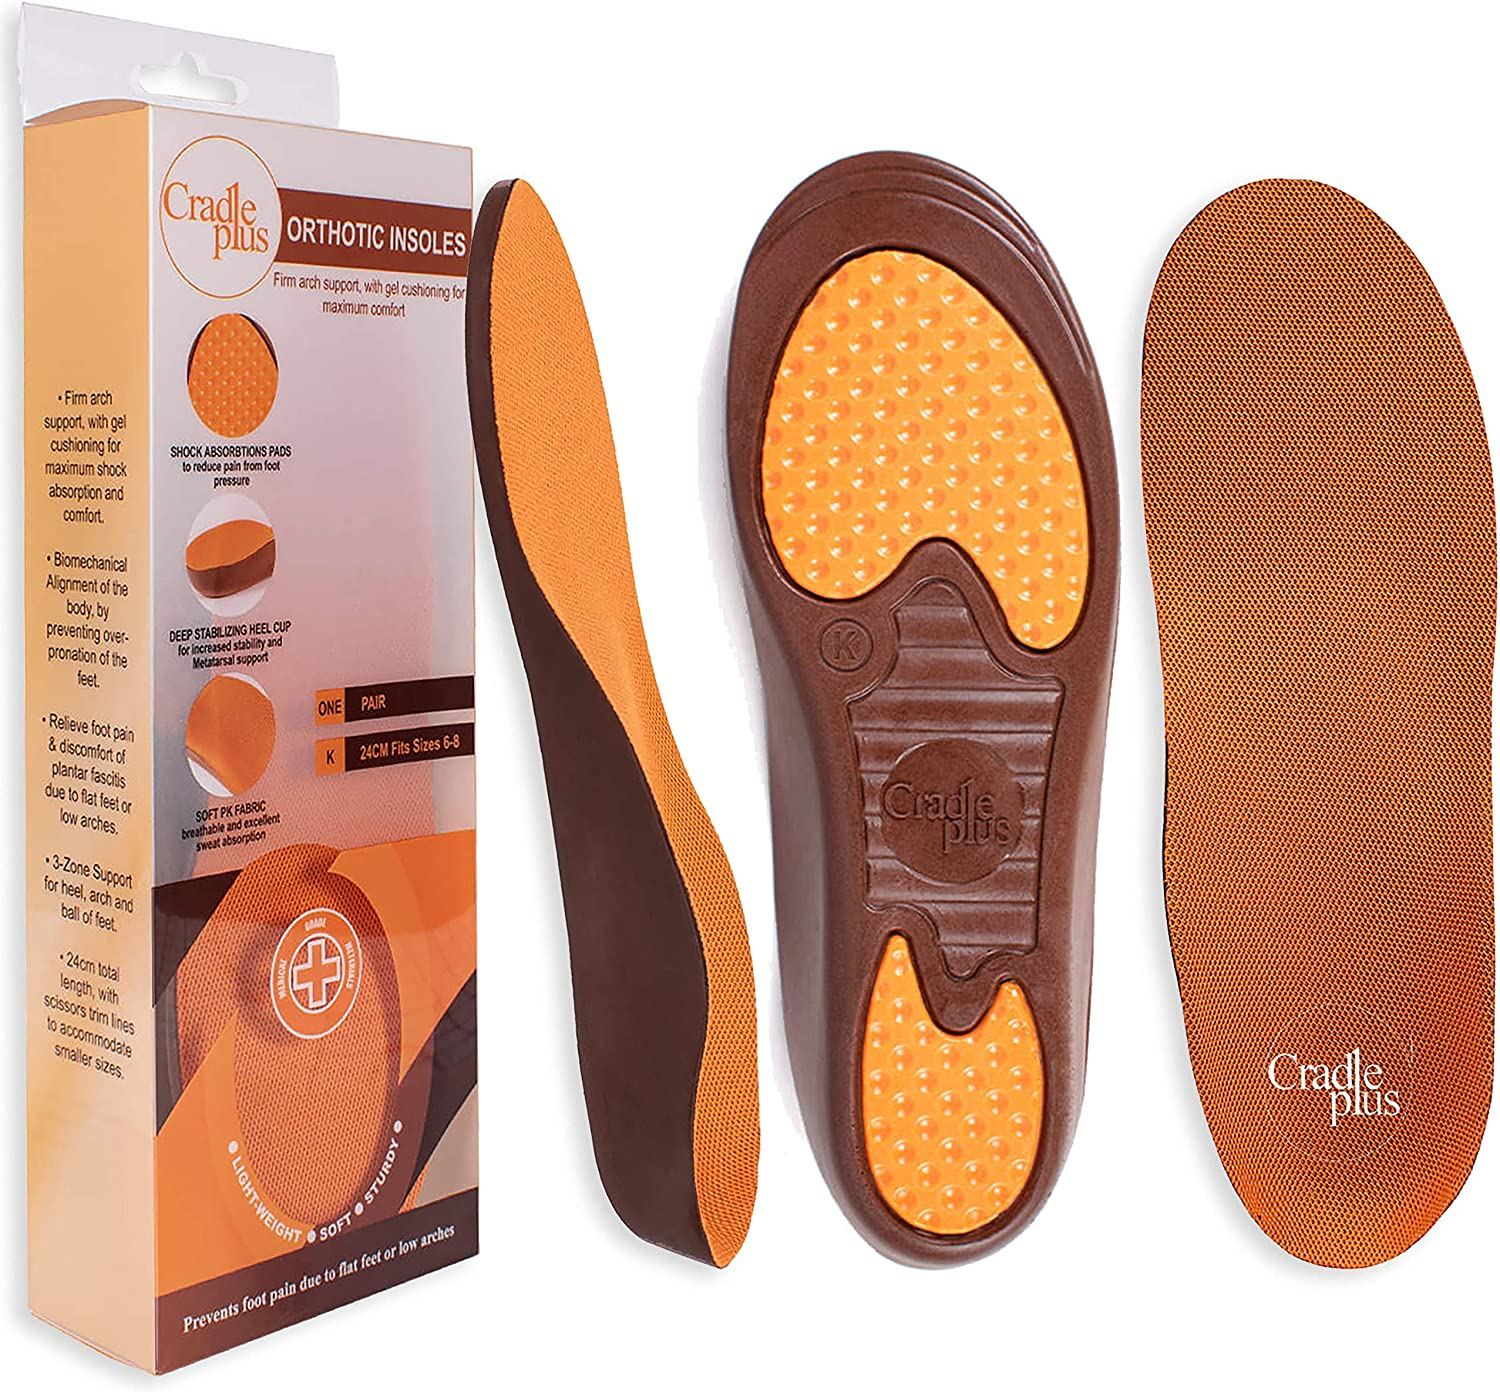 Plantar Fasciitis Insoles for Men and Women | Shoe Inserts for Women | Arch Support Insoles Men | Shoe Inserts for Plantar Fasciitis Women | Trim to Fit Orthotics for High Arch | Size 9-12